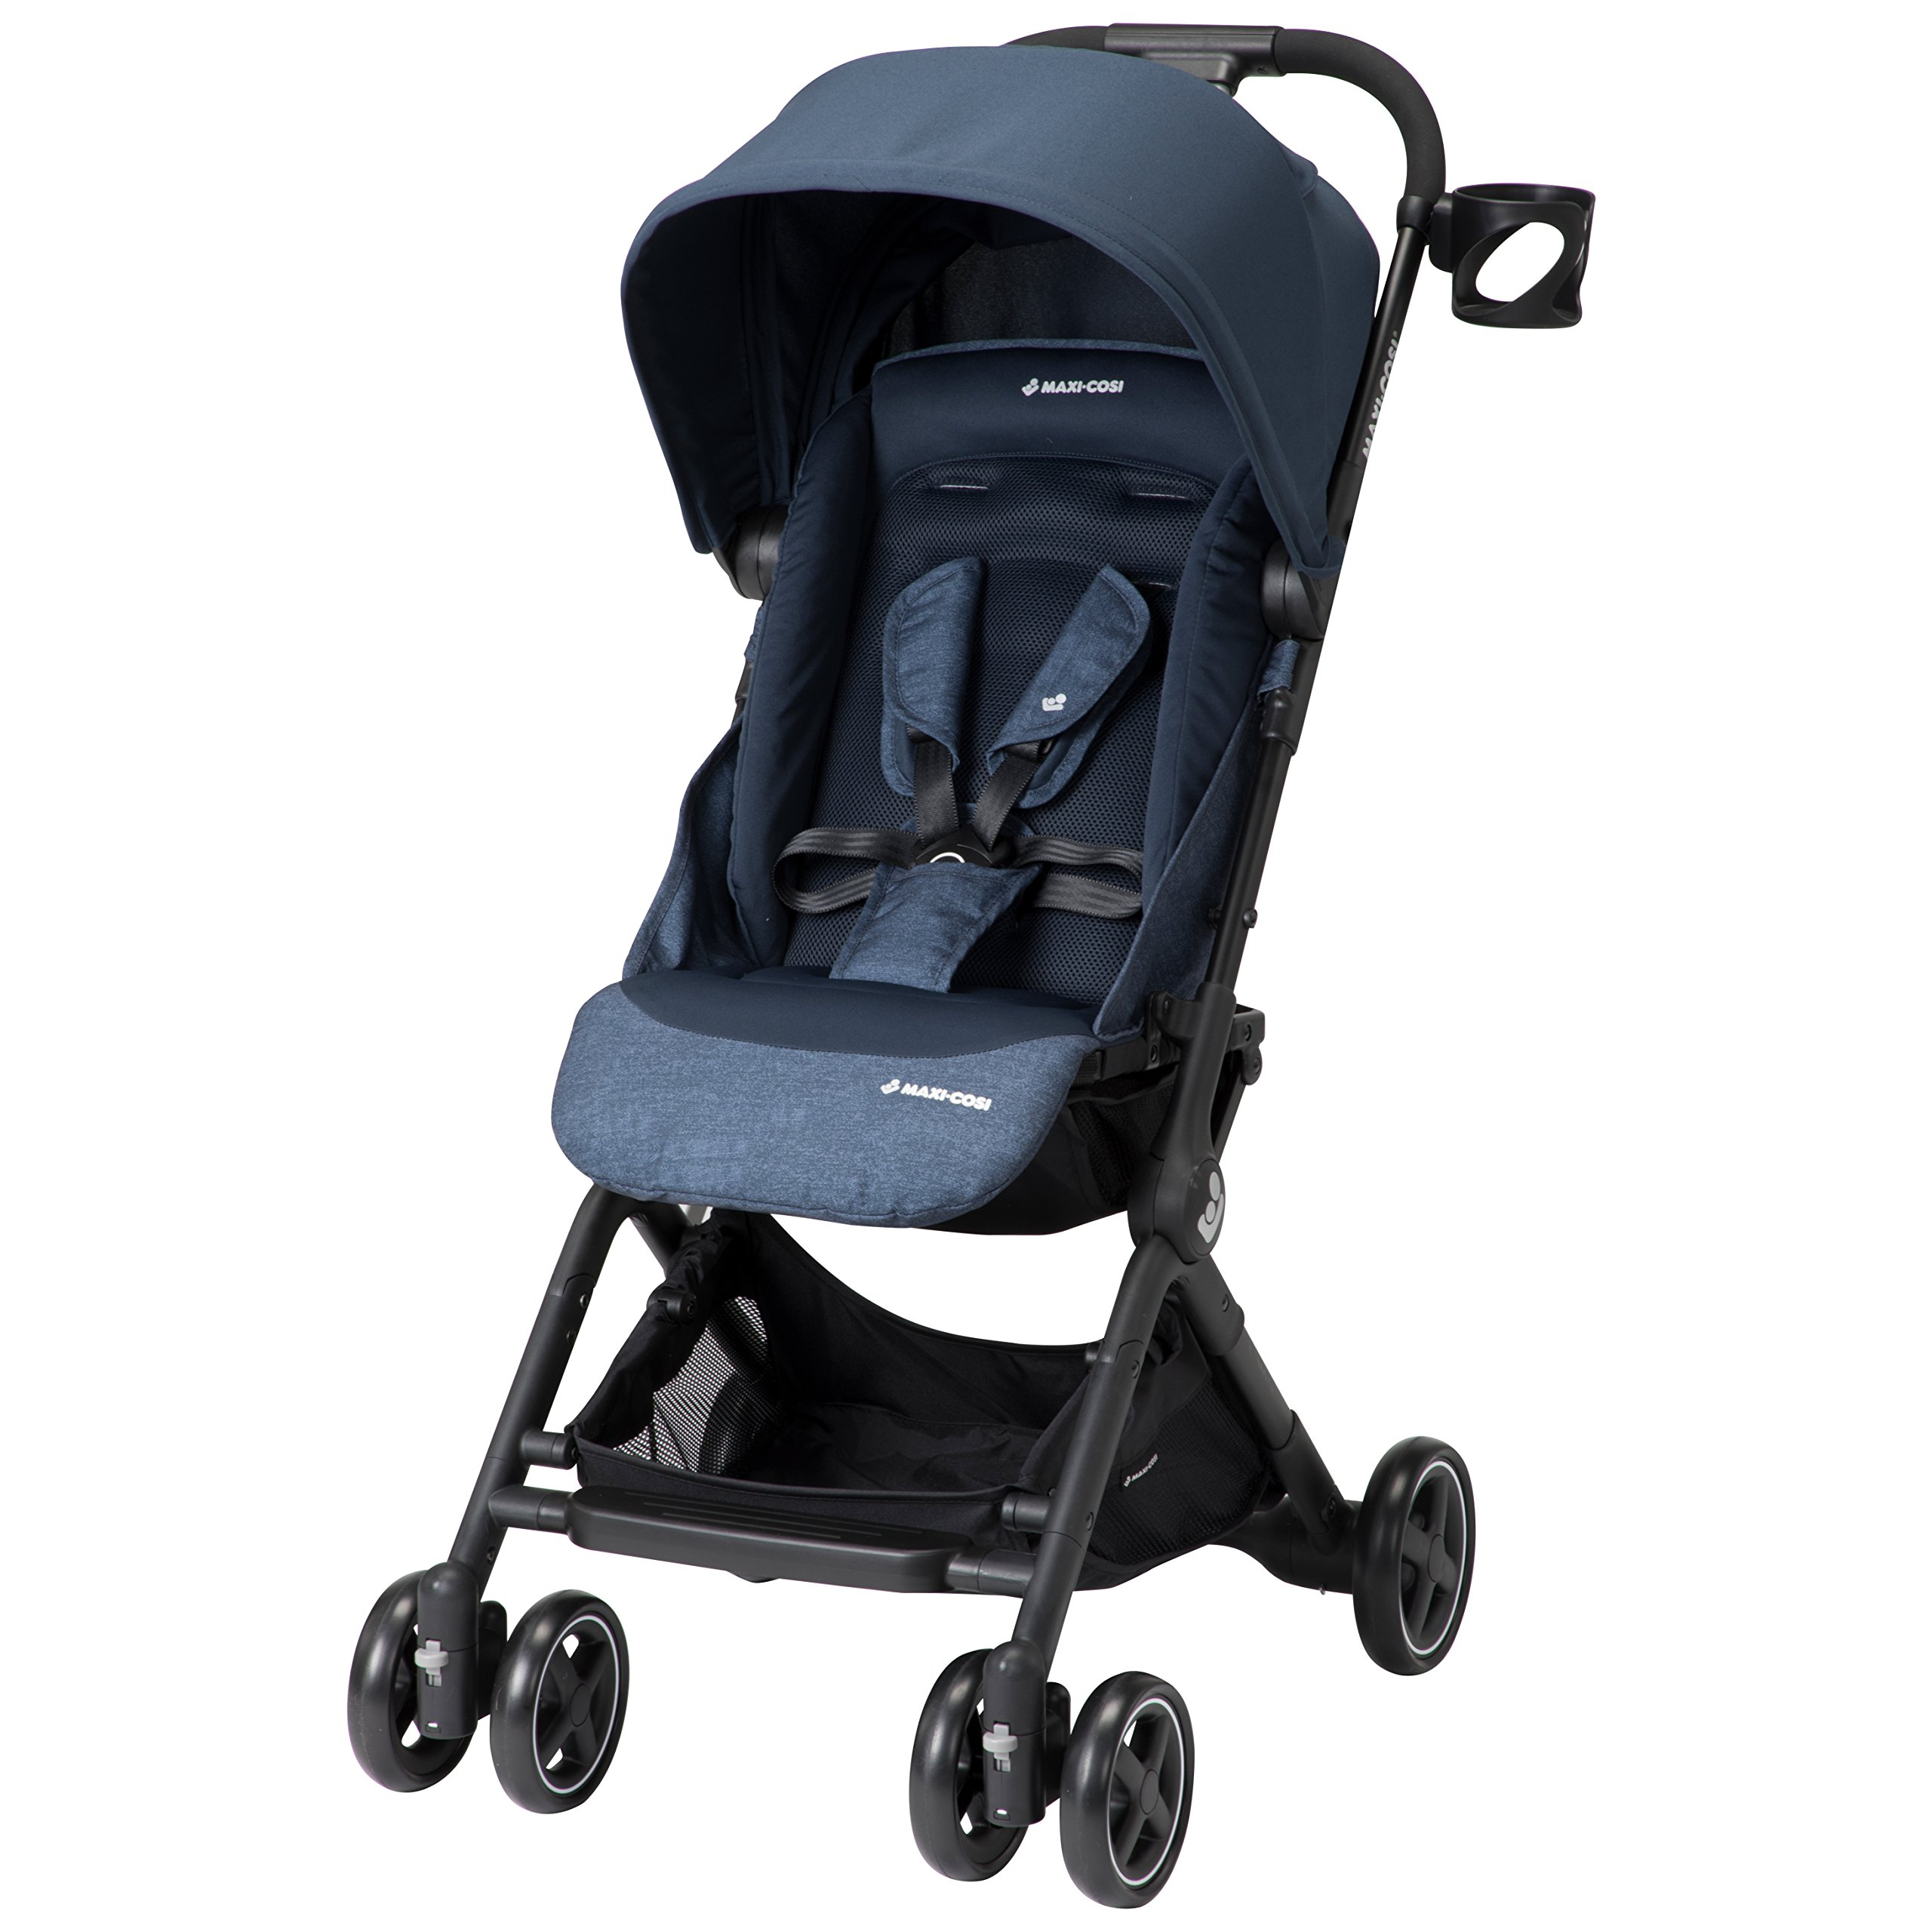 Maxi-Cosi Lara Lightweight Ultra Compact Stroller, Nomad Blue, One Size